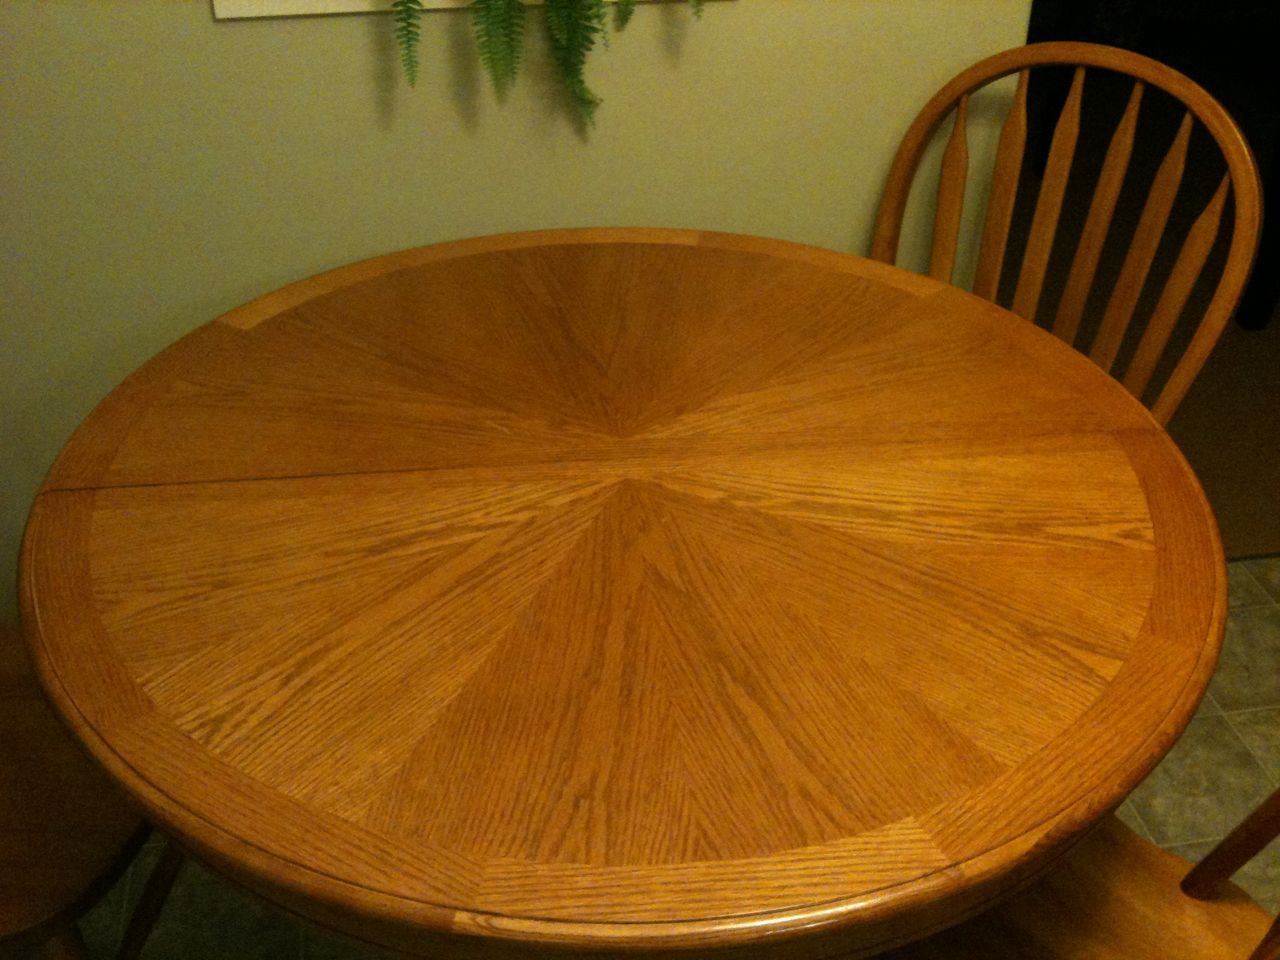 Refinish table chairs pleasant home design - Refinishing a kitchen table ...